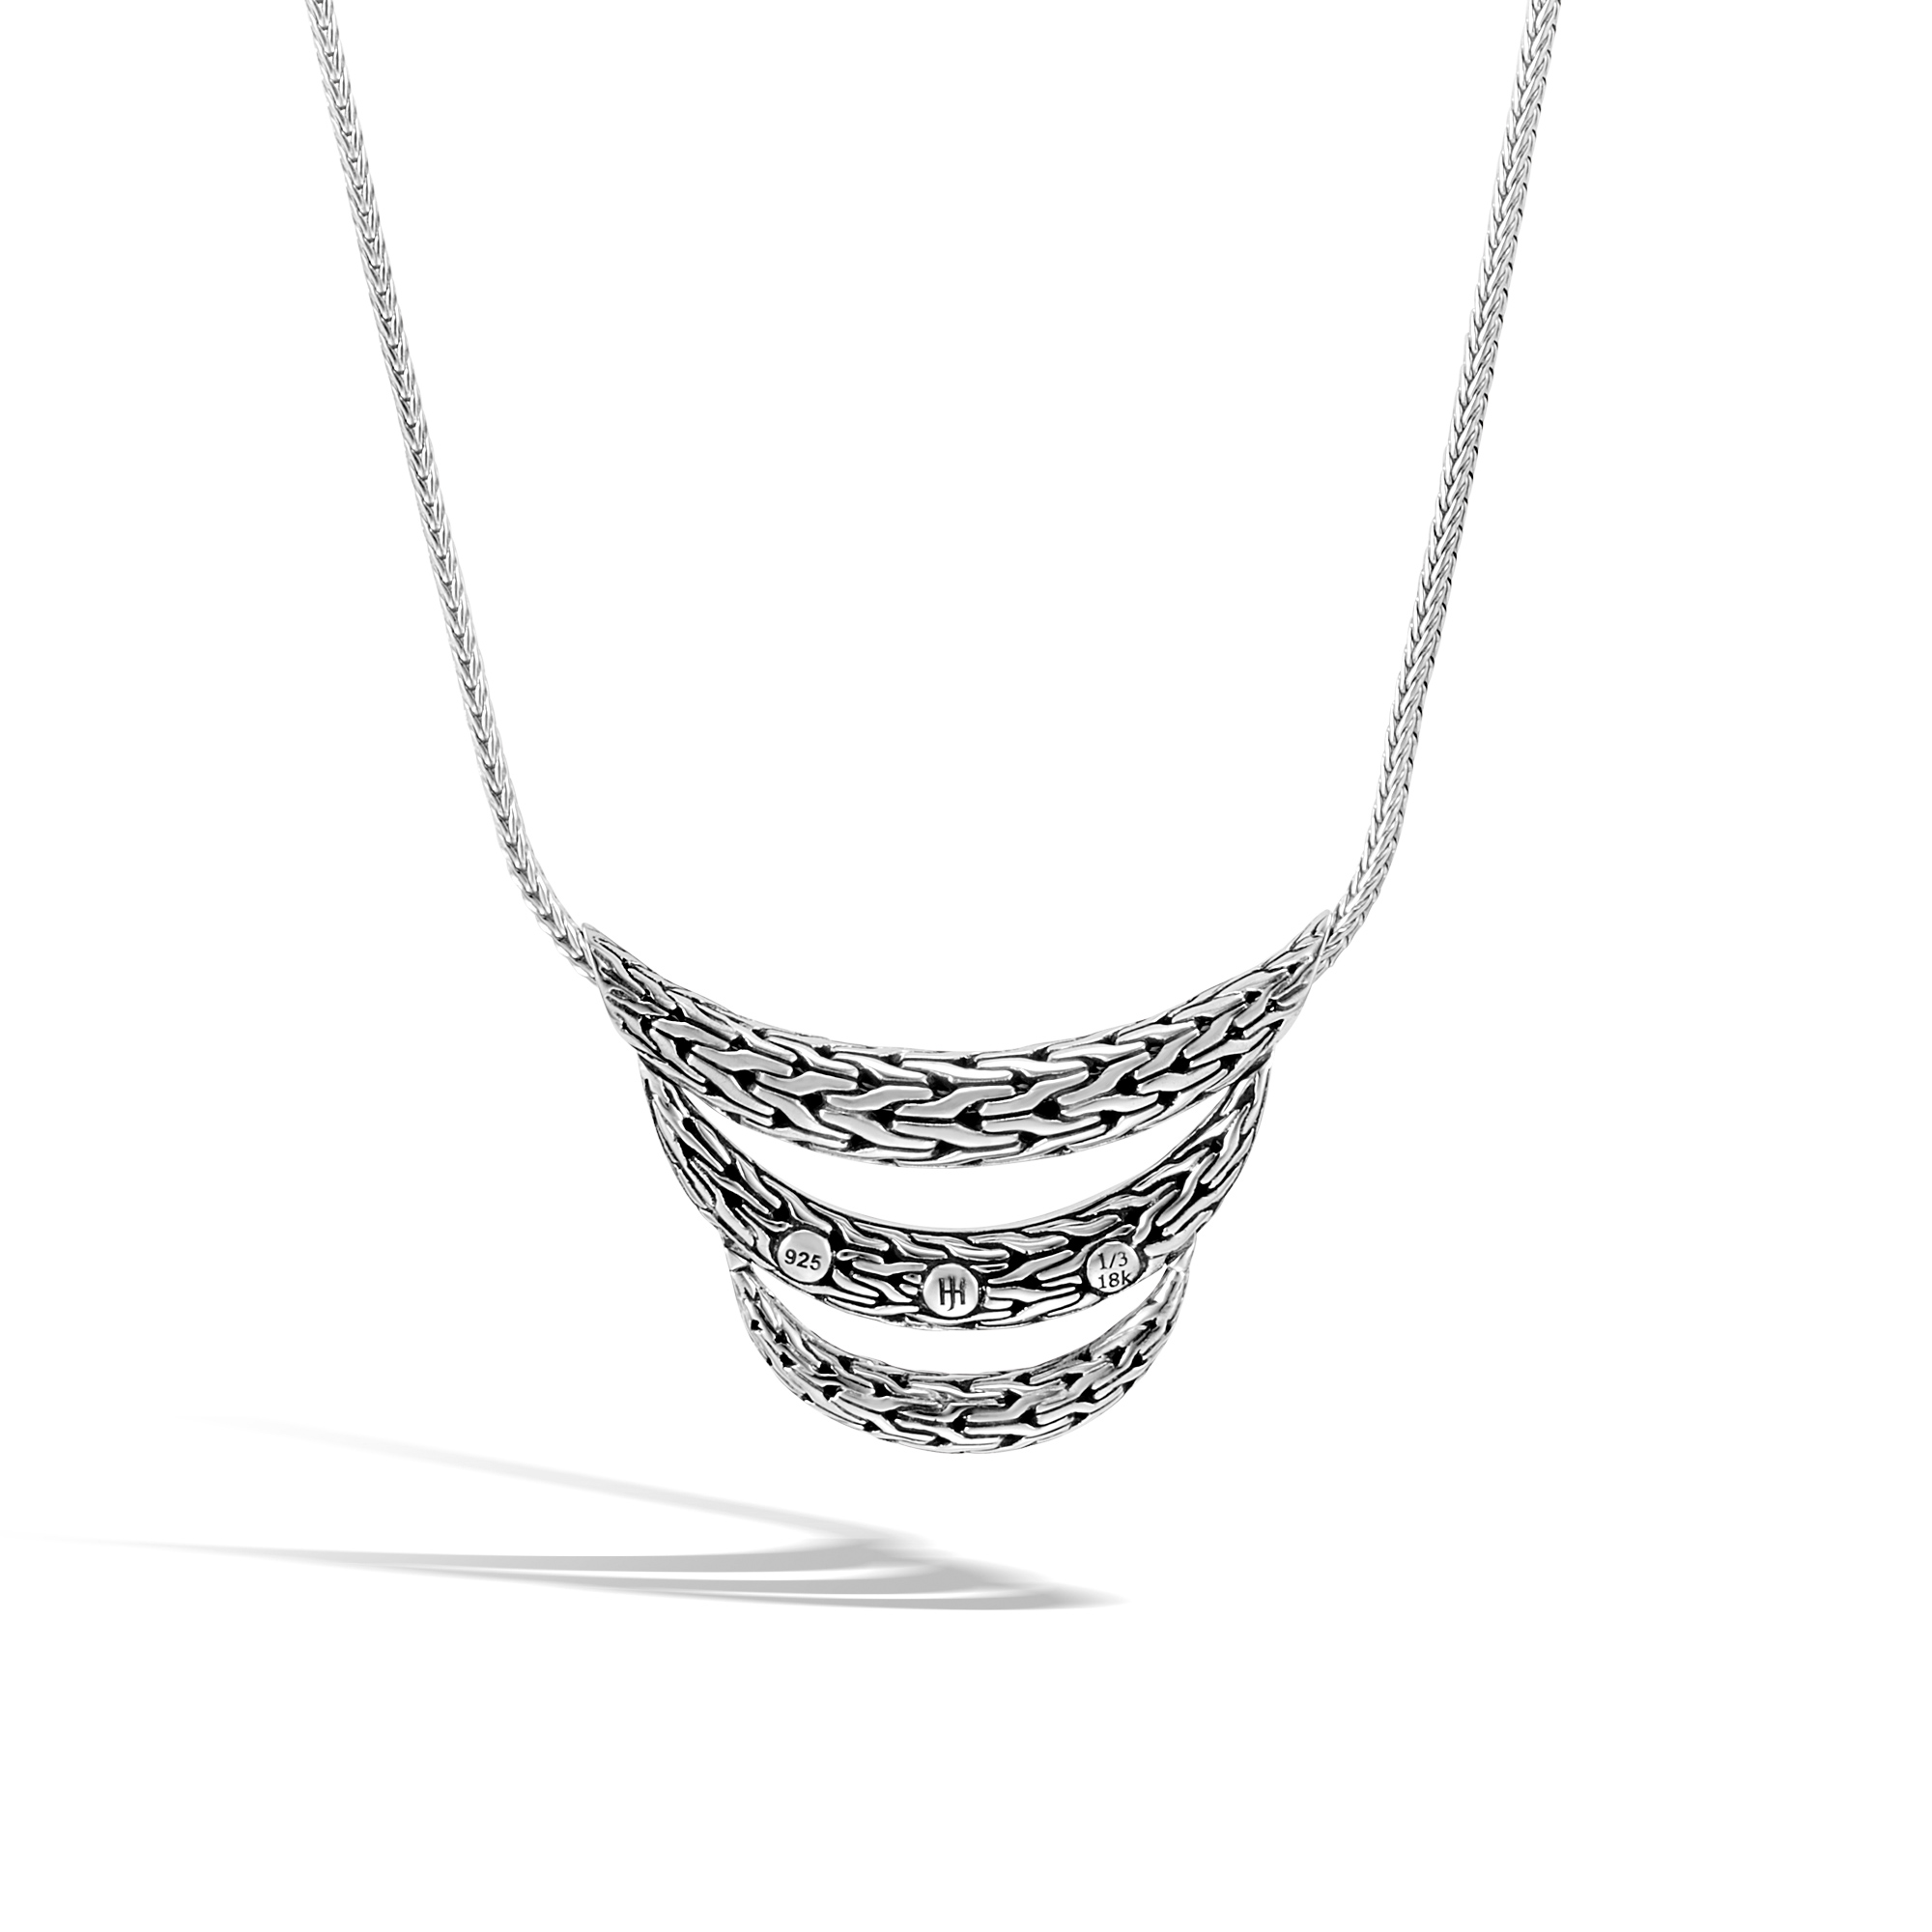 Classic Chain Bib Necklace in Silver and Hammered 18K Gold, , large